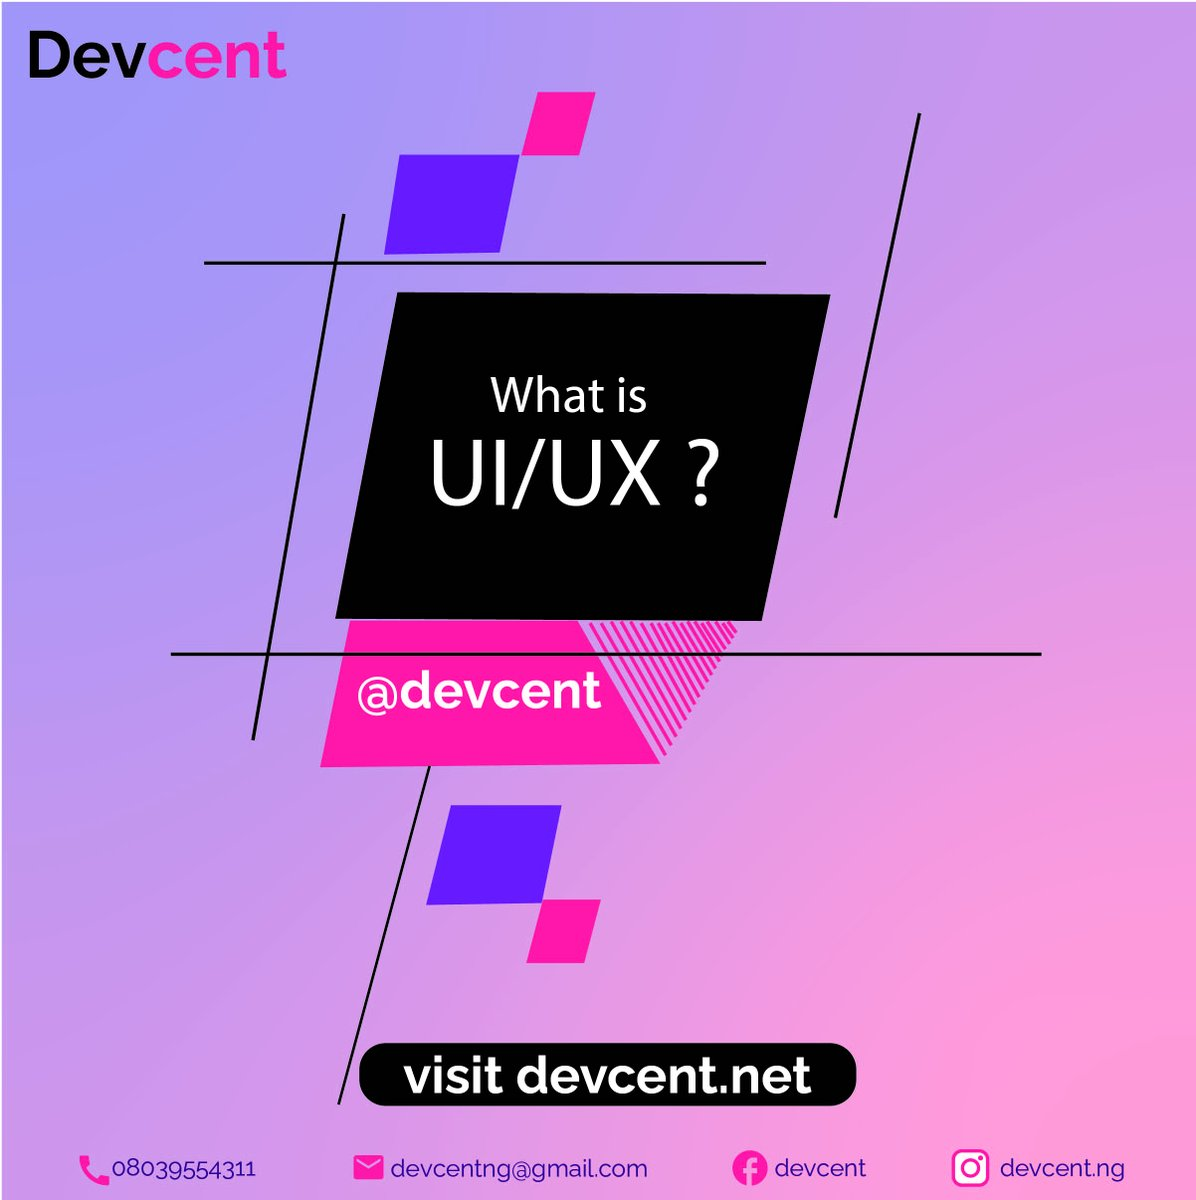 What decision are you making this new week? Ever thought of learning a digital skill like UI/UX? Well, here is what you need to know about it. #learnwithdevcent #MondayMotivation  #tech  #skills